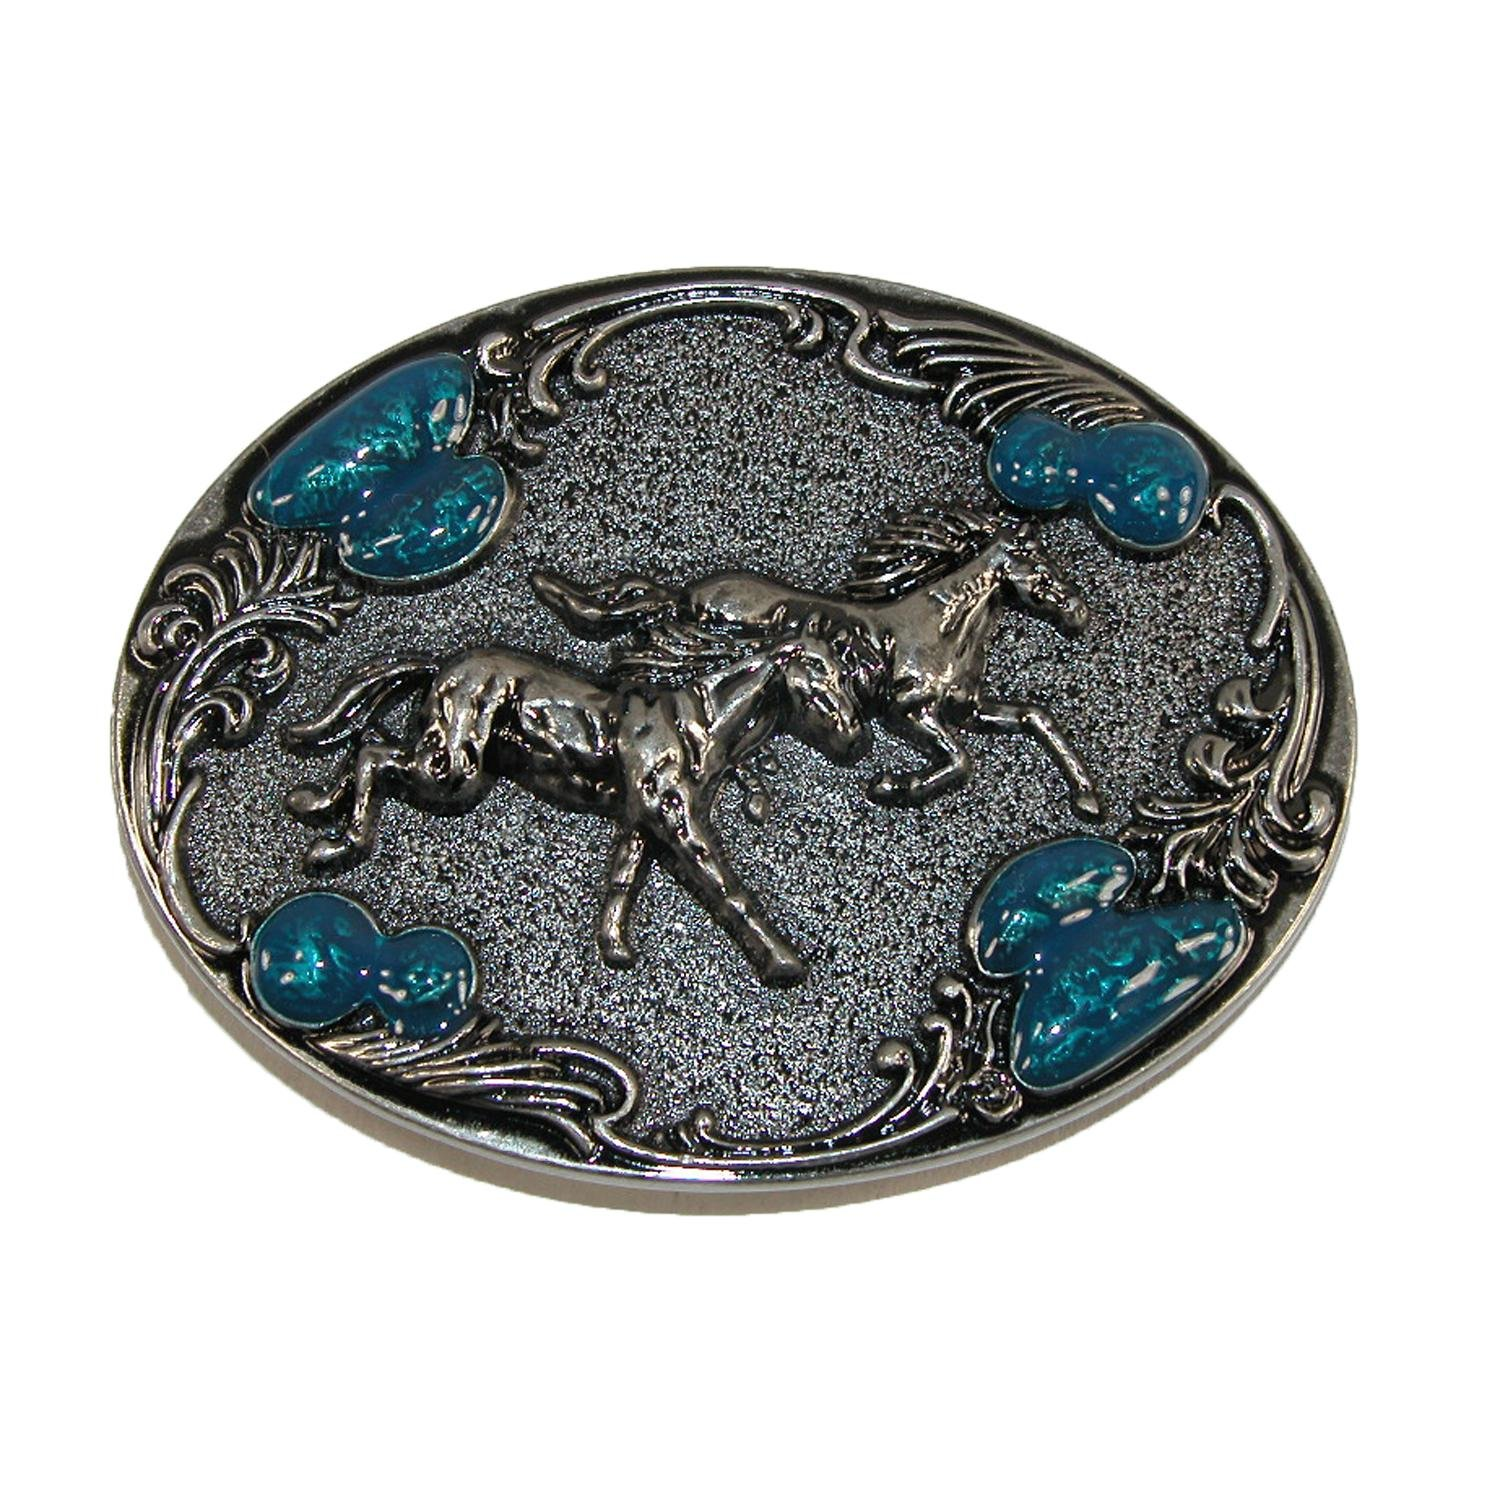 CTM® Women's Horse Belt Buckle with Turquoise Accents, Silver RR-1630-SIL